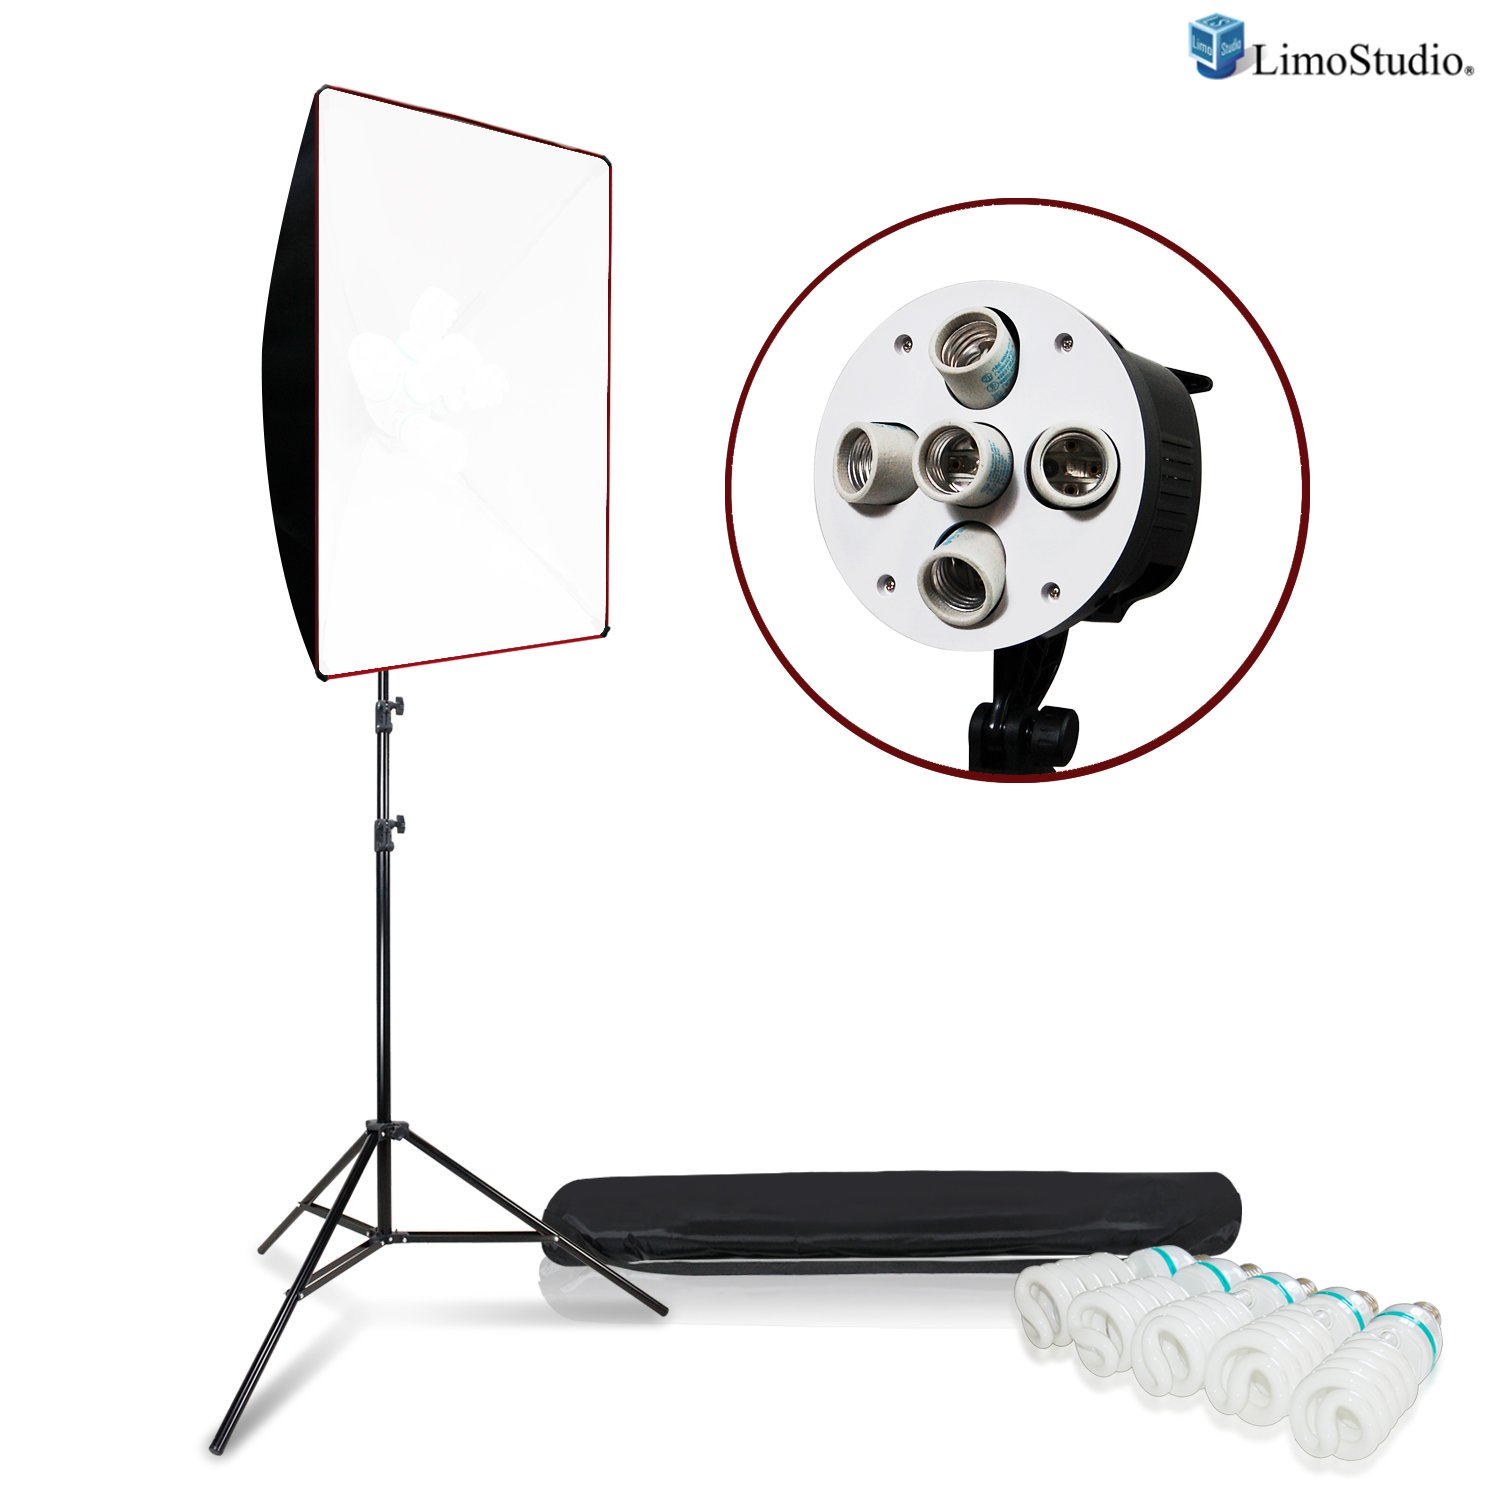 "LimoStudio 18/"" x 27/"" Soft Box Lighting Kit with White Diffuser and Honeycomb Grid High Output CFL Bulb and Light Stands for Creating Soft Even Lighting for Professional Photo Video Shoots AGG2611"